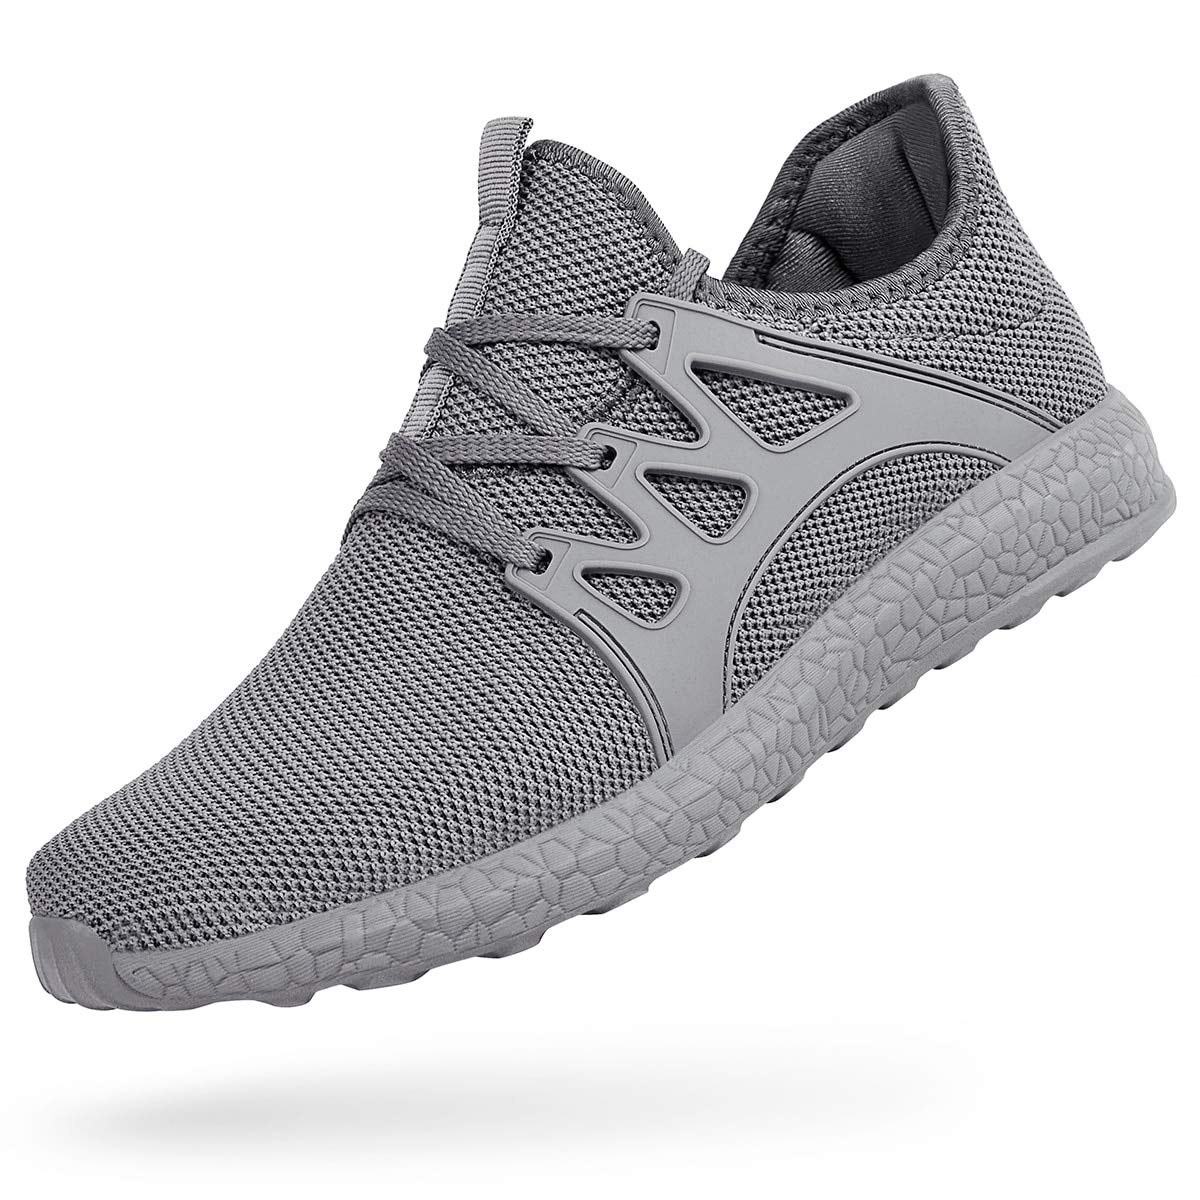 ZOCAVIA Men Women Trainers Lightweight Running Sports Shoes Outdoor Non Slip Walking Gym Fitness Athletic Shoes